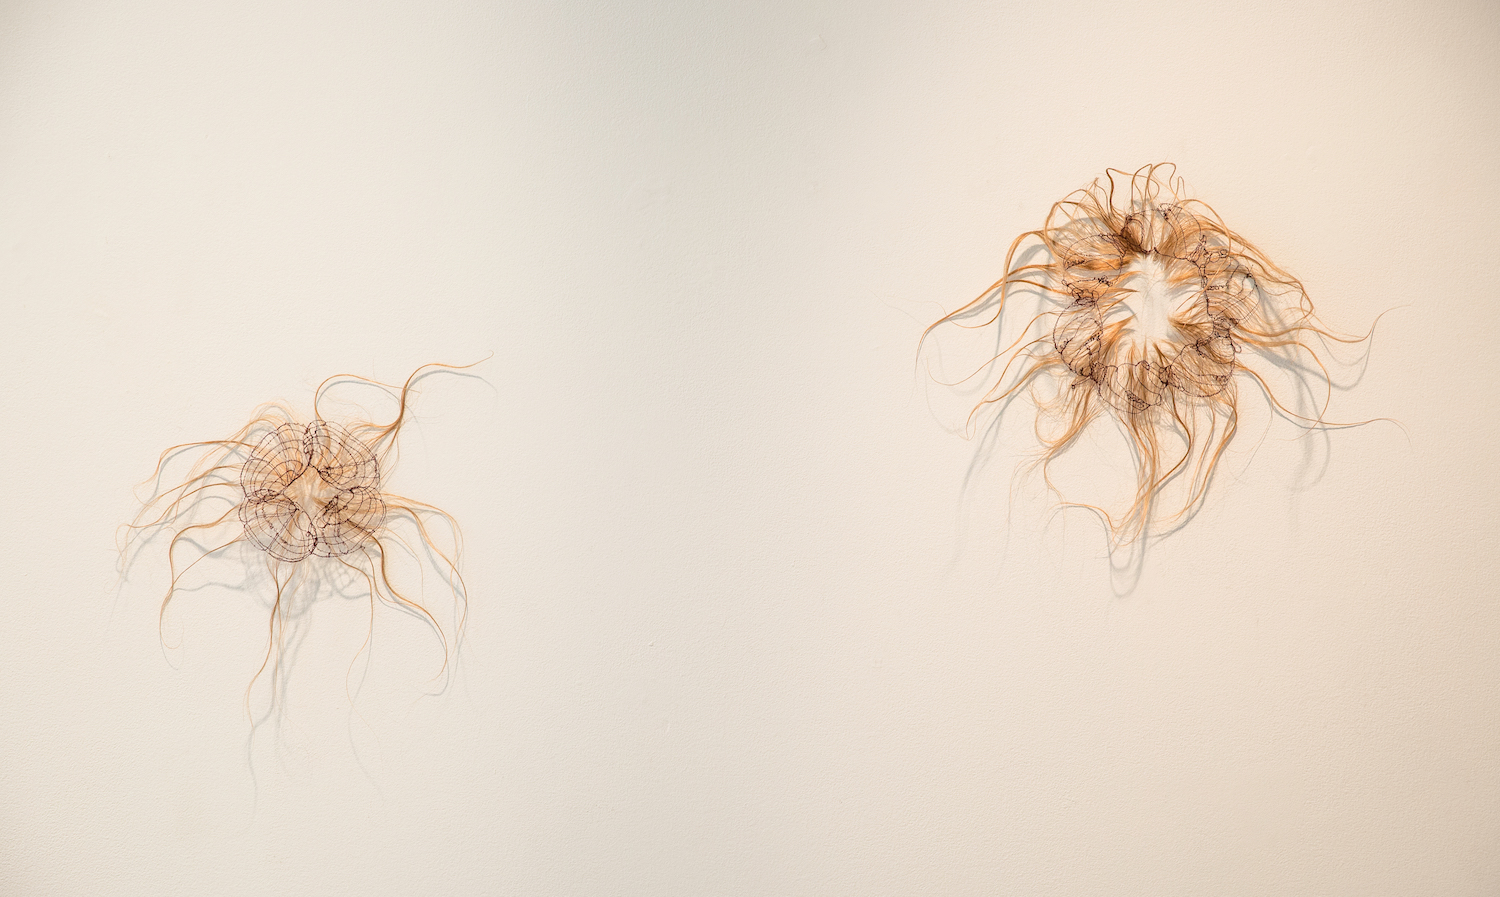 Left:  Patriarchal Orifice #3: Brook Floater (Alasmidonta varicosa) , Thread stitched on human hair, insect pin, styling products, 14 x 14 inches, 2017. Right:  Patriarchal Orifice #1: Vertigo Morsei , Thread stitched on human hair, insect pin, styling products, 16 x 19 x 1 inches, 2016